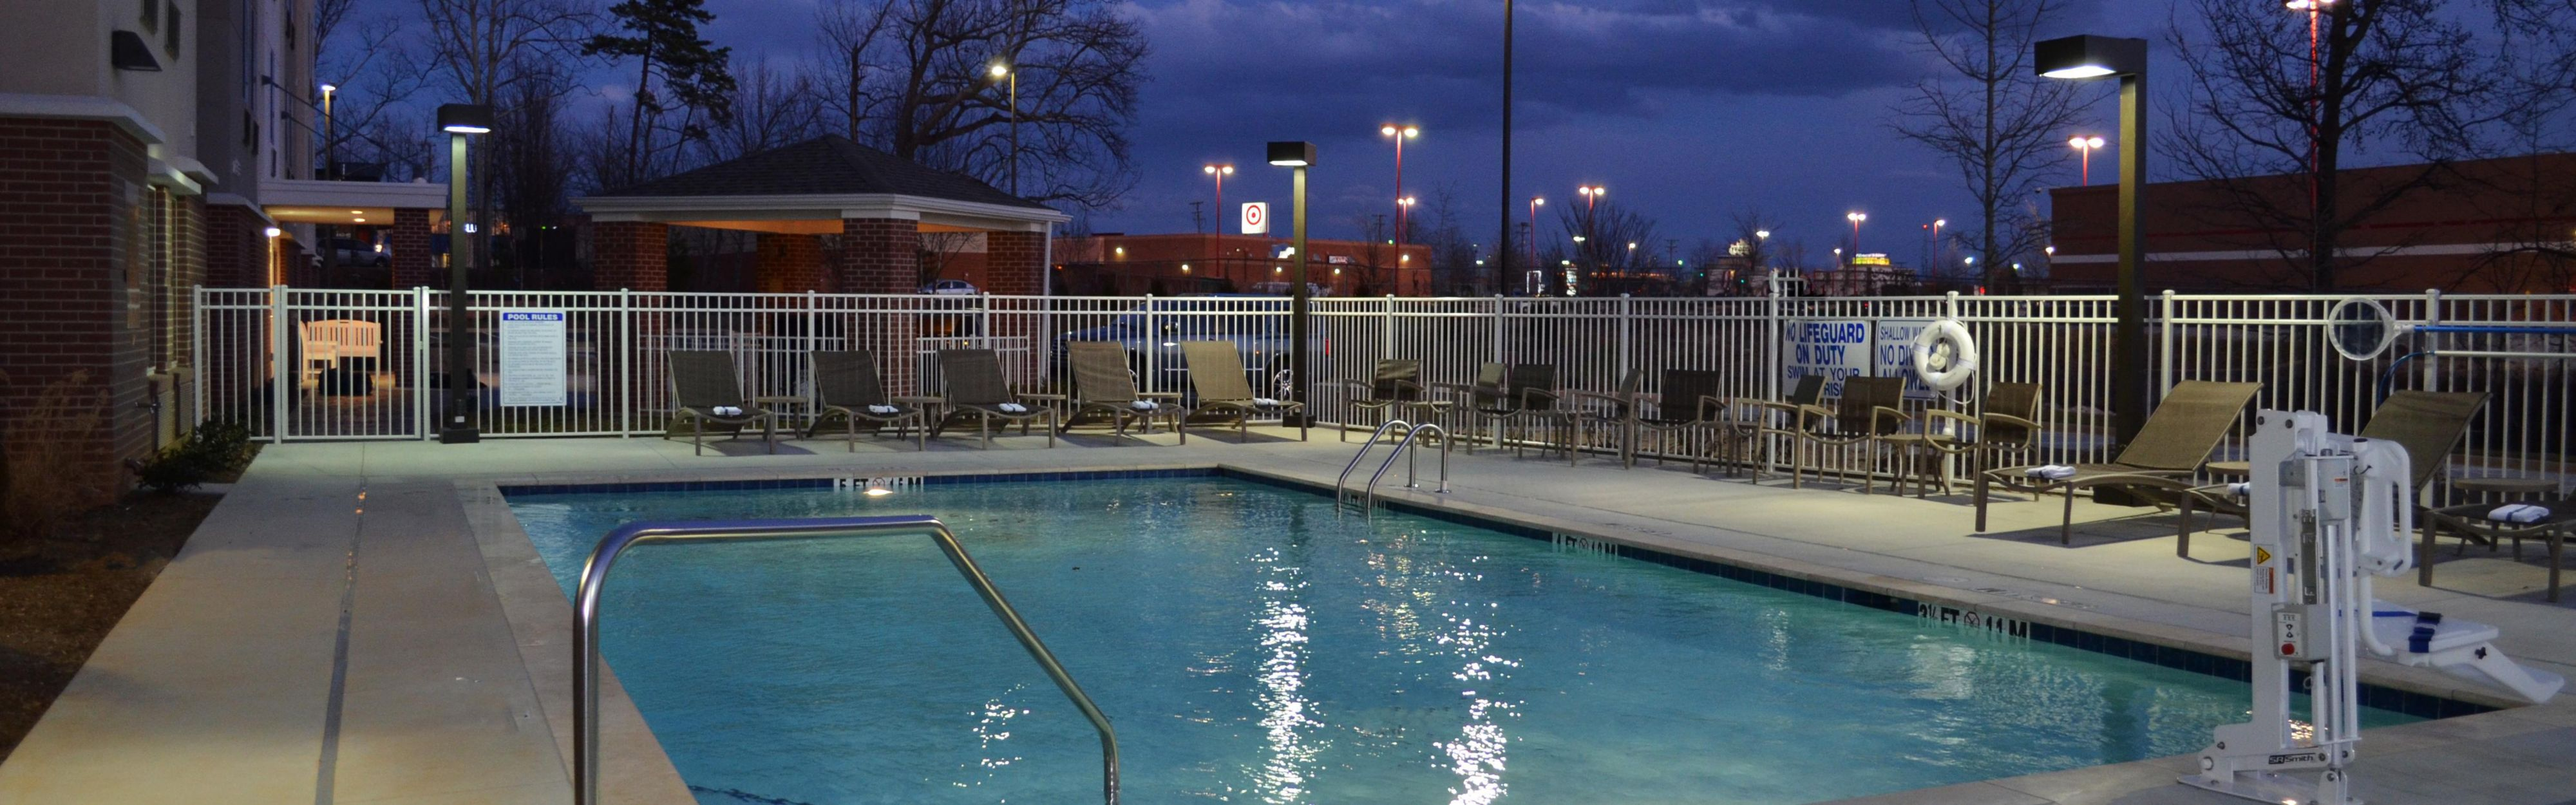 Candlewood Suites Greenville image 2